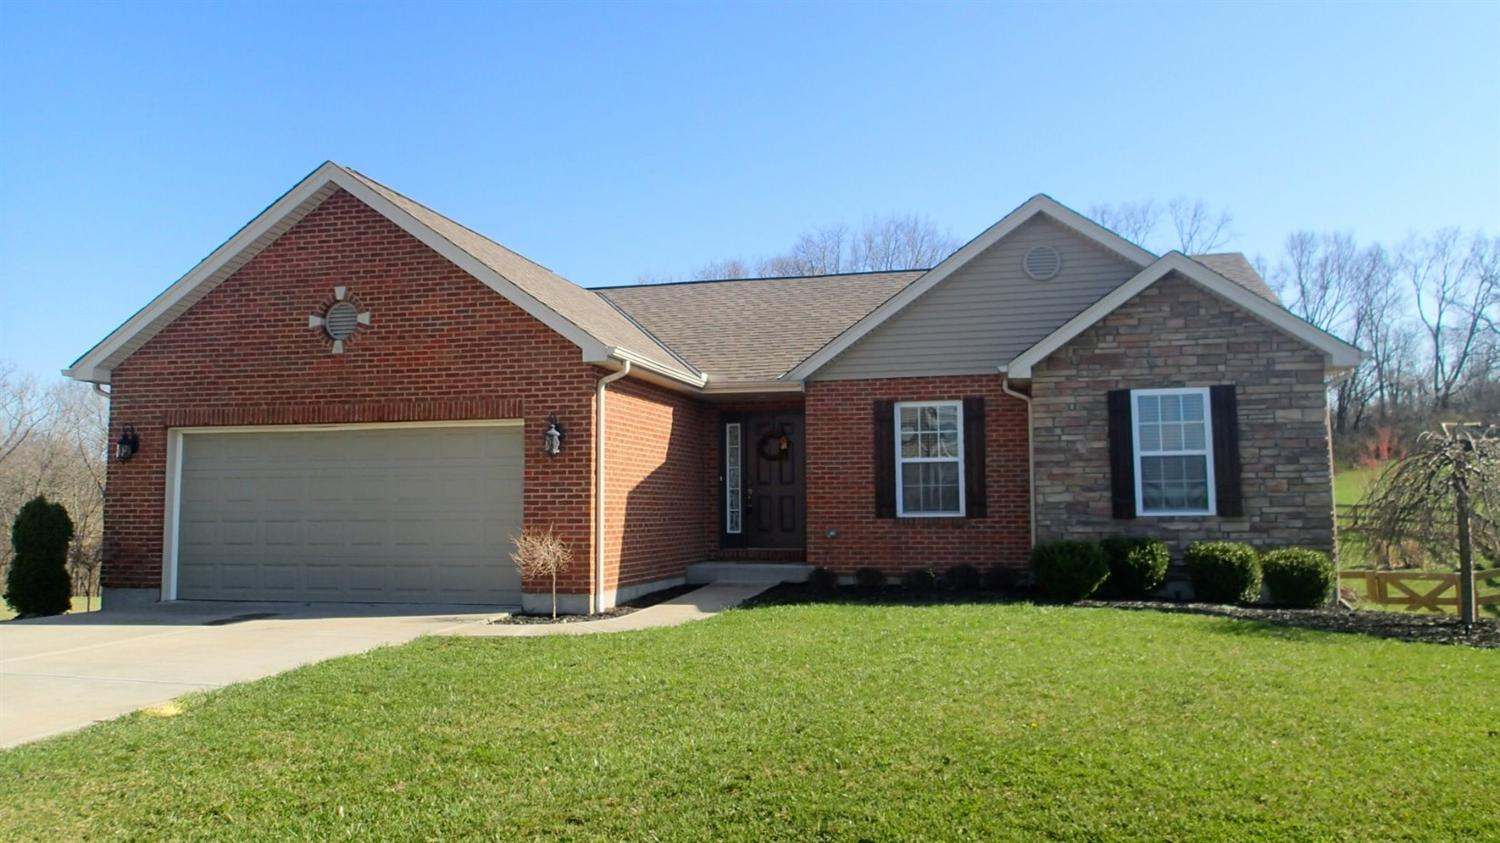 Photo 1 for 10334 Canberra Dr Independence, KY 41051